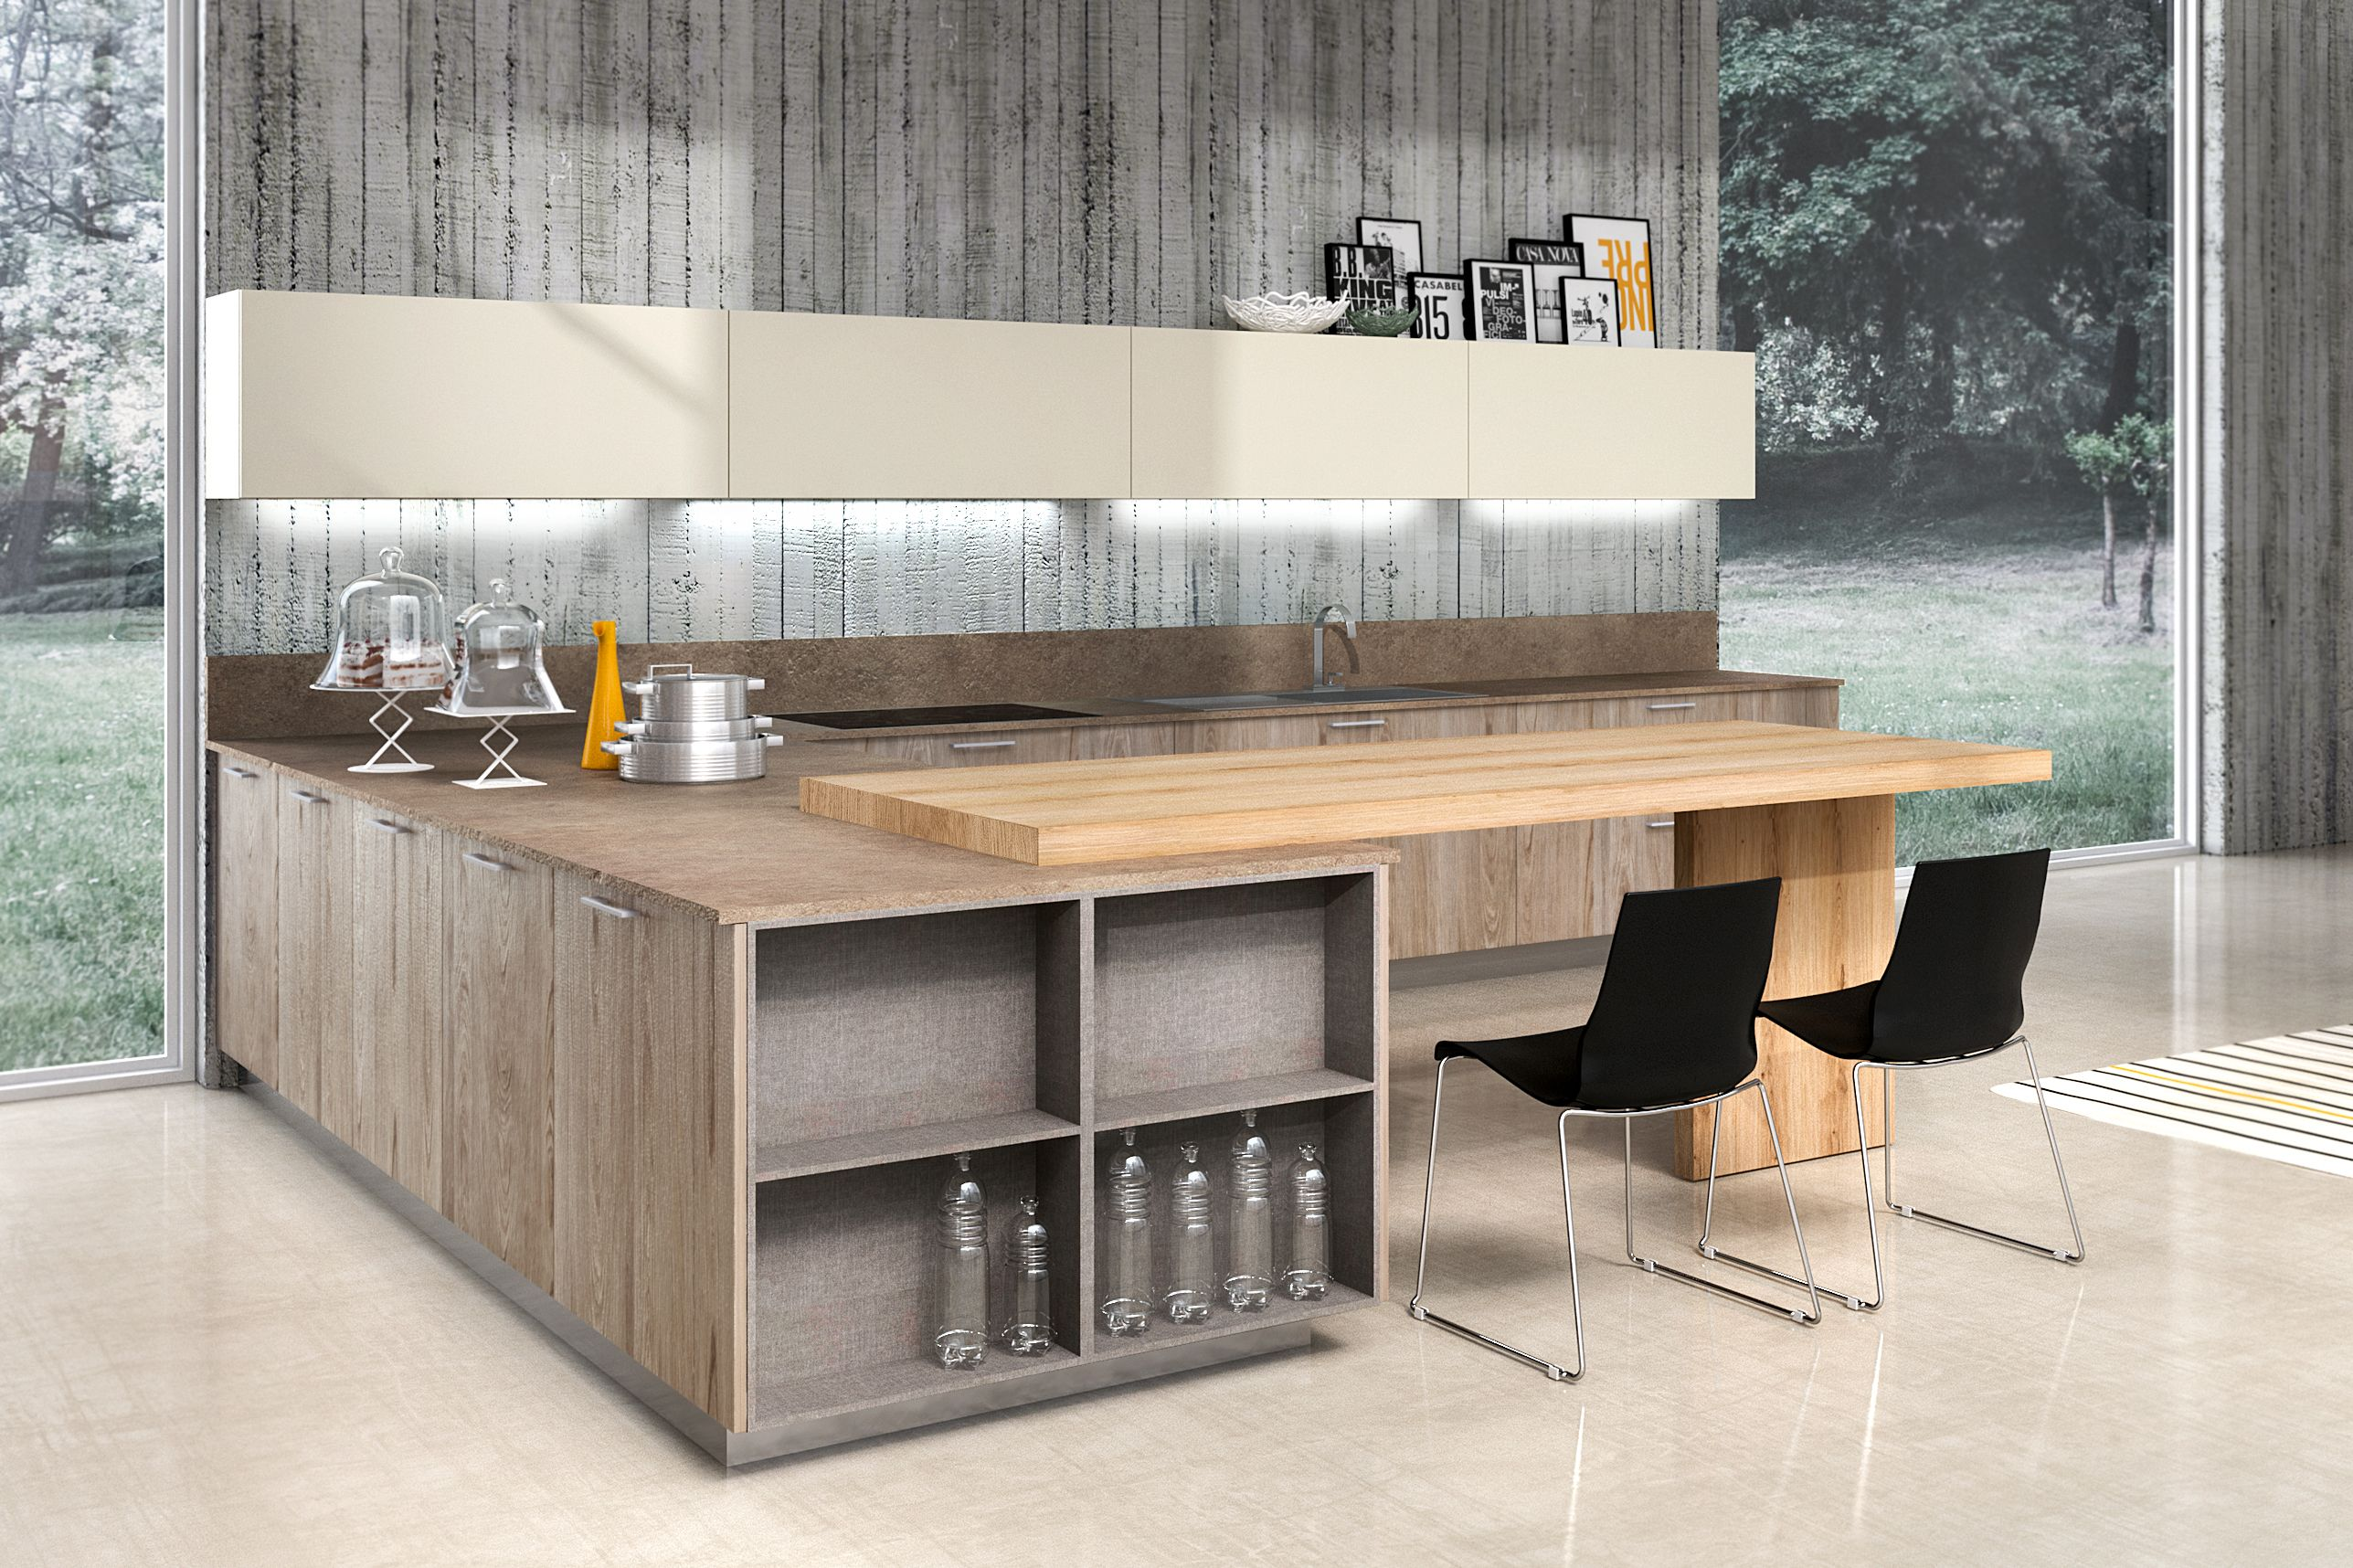 1000+ images about armony cucine ypsilon on pinterest   models